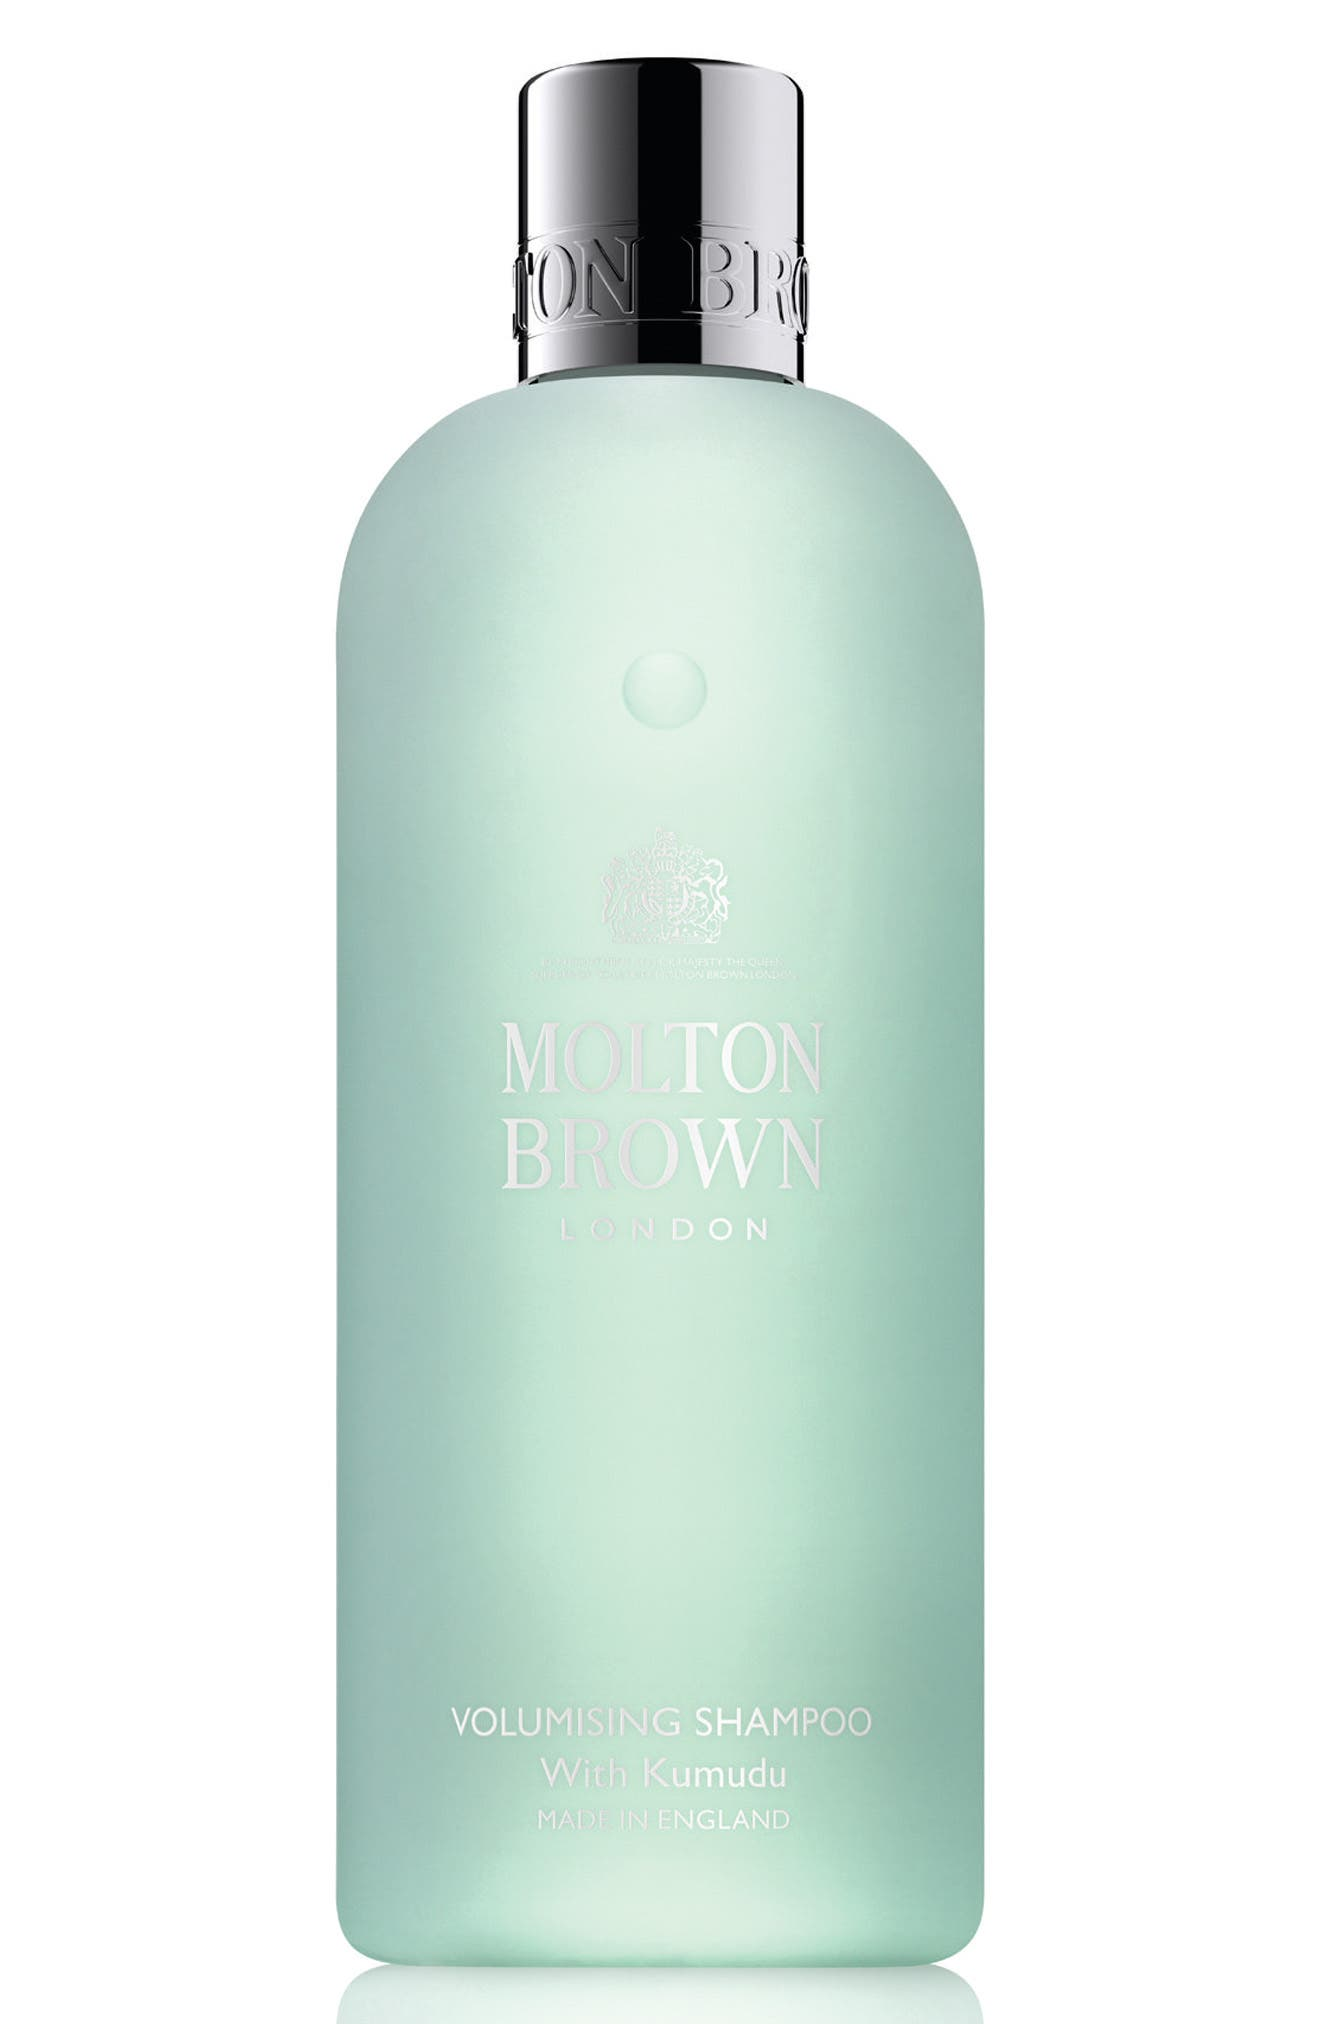 MOLTON BROWN London Volumizing Shampoo with Kumudu